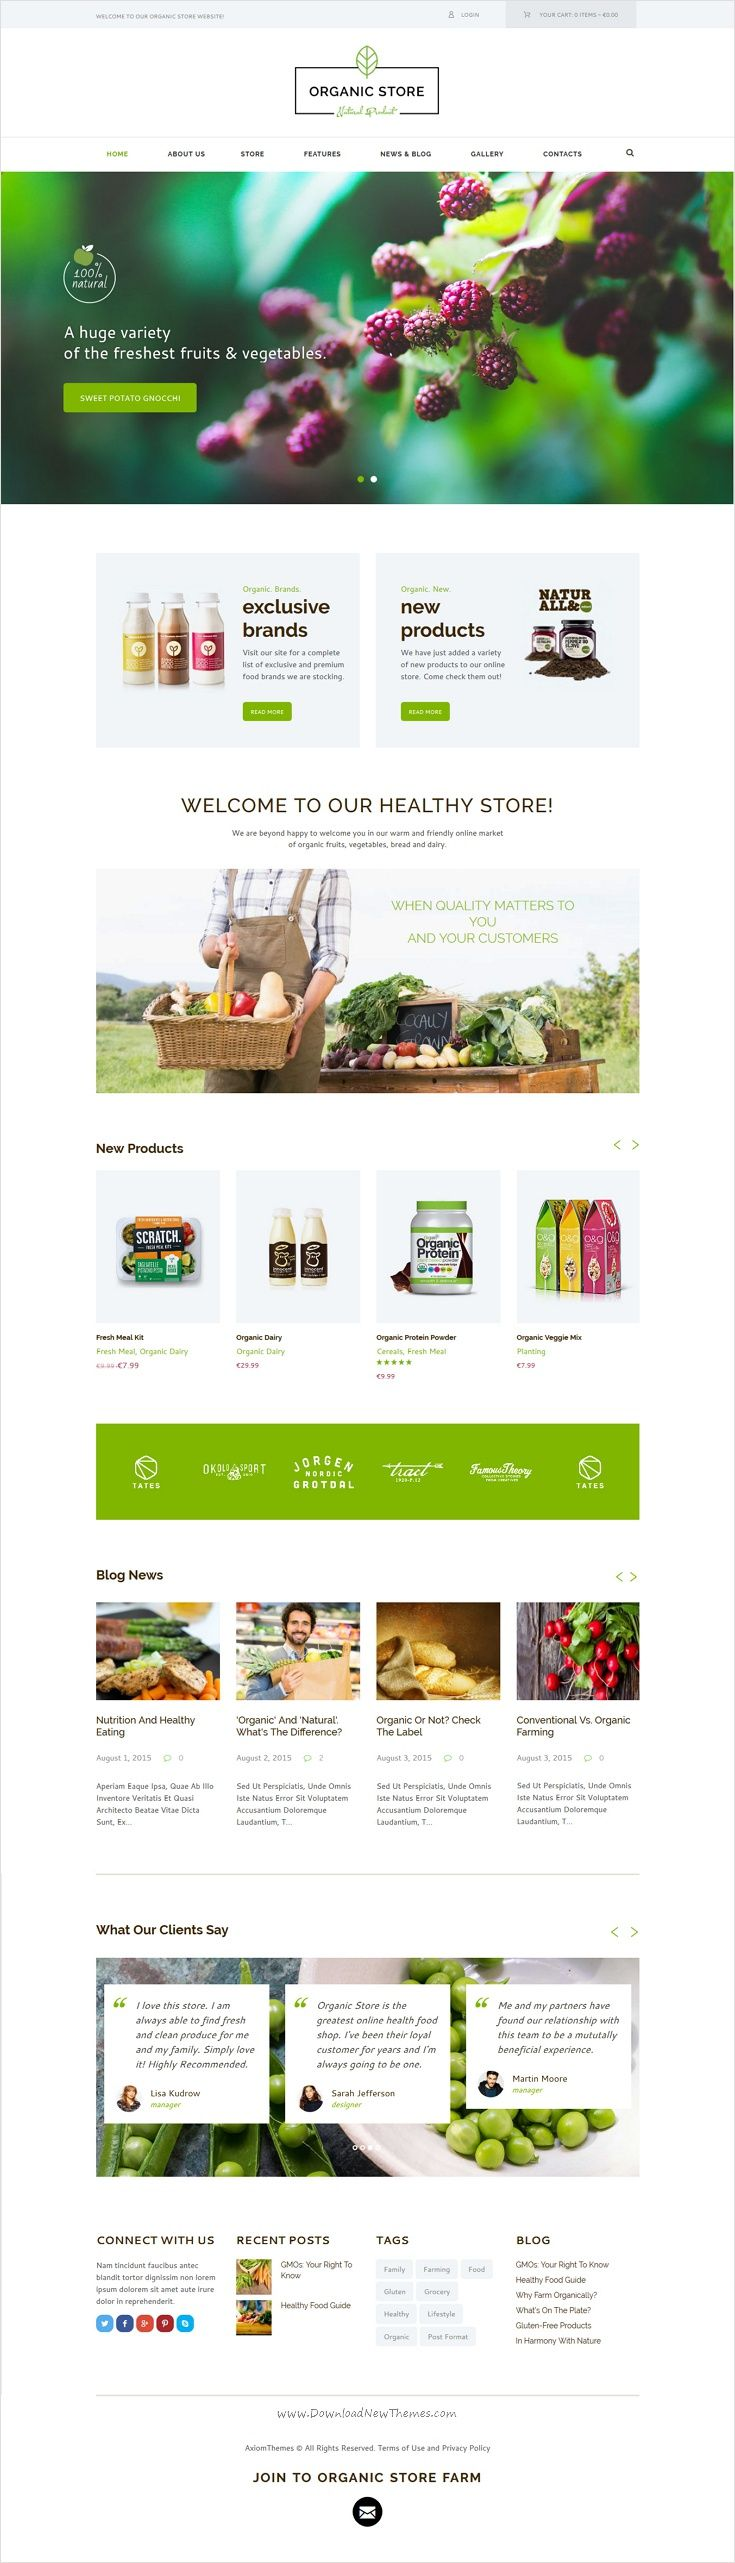 organic food eco products site template. Black Bedroom Furniture Sets. Home Design Ideas